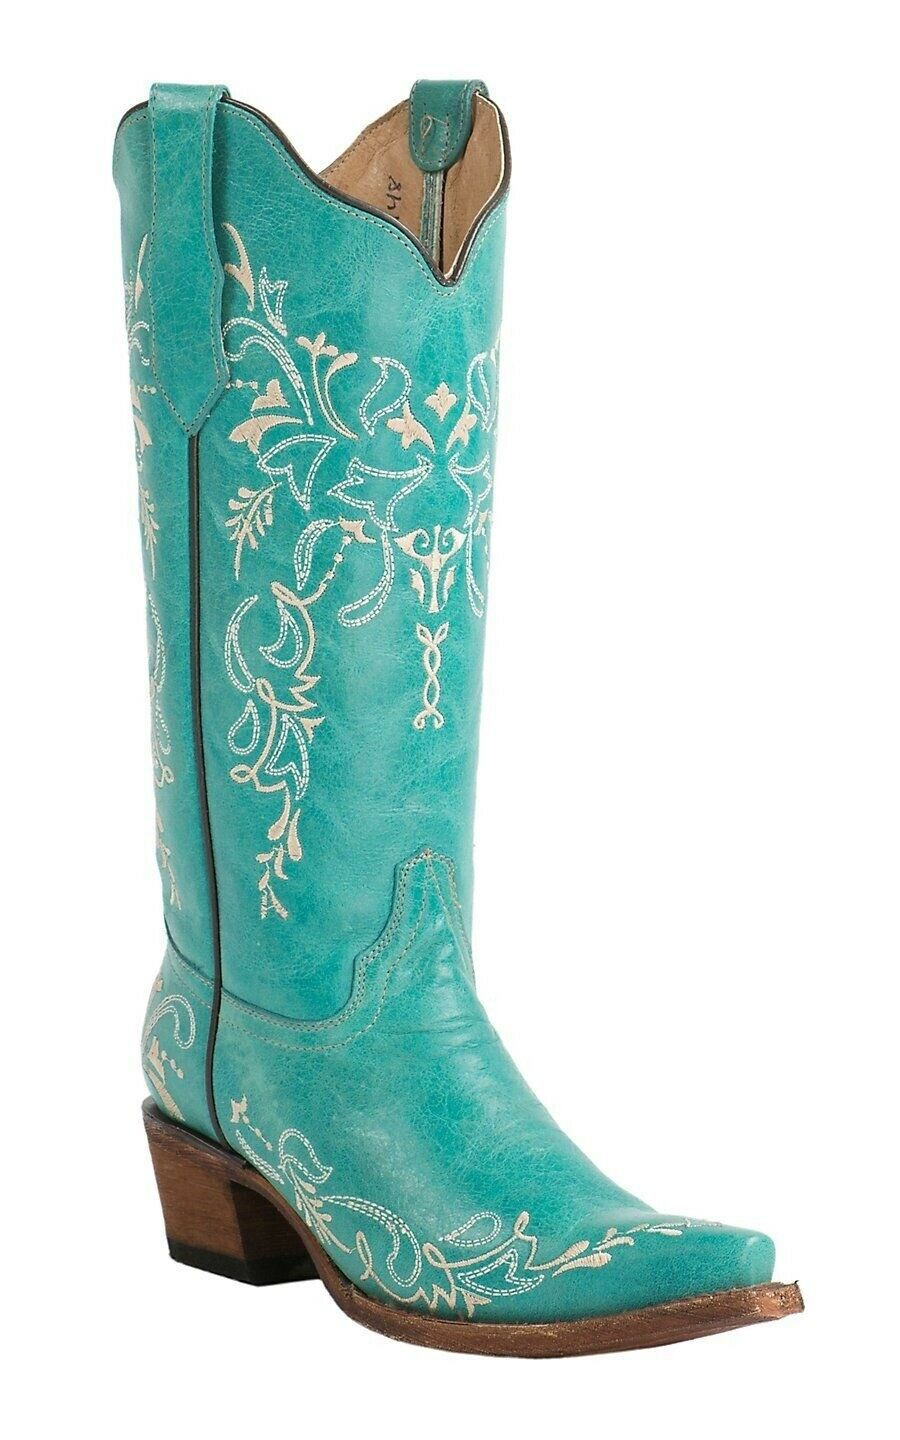 Circle G By Corral Ladies Western Boots Turquoise Beige Embroidery L5148